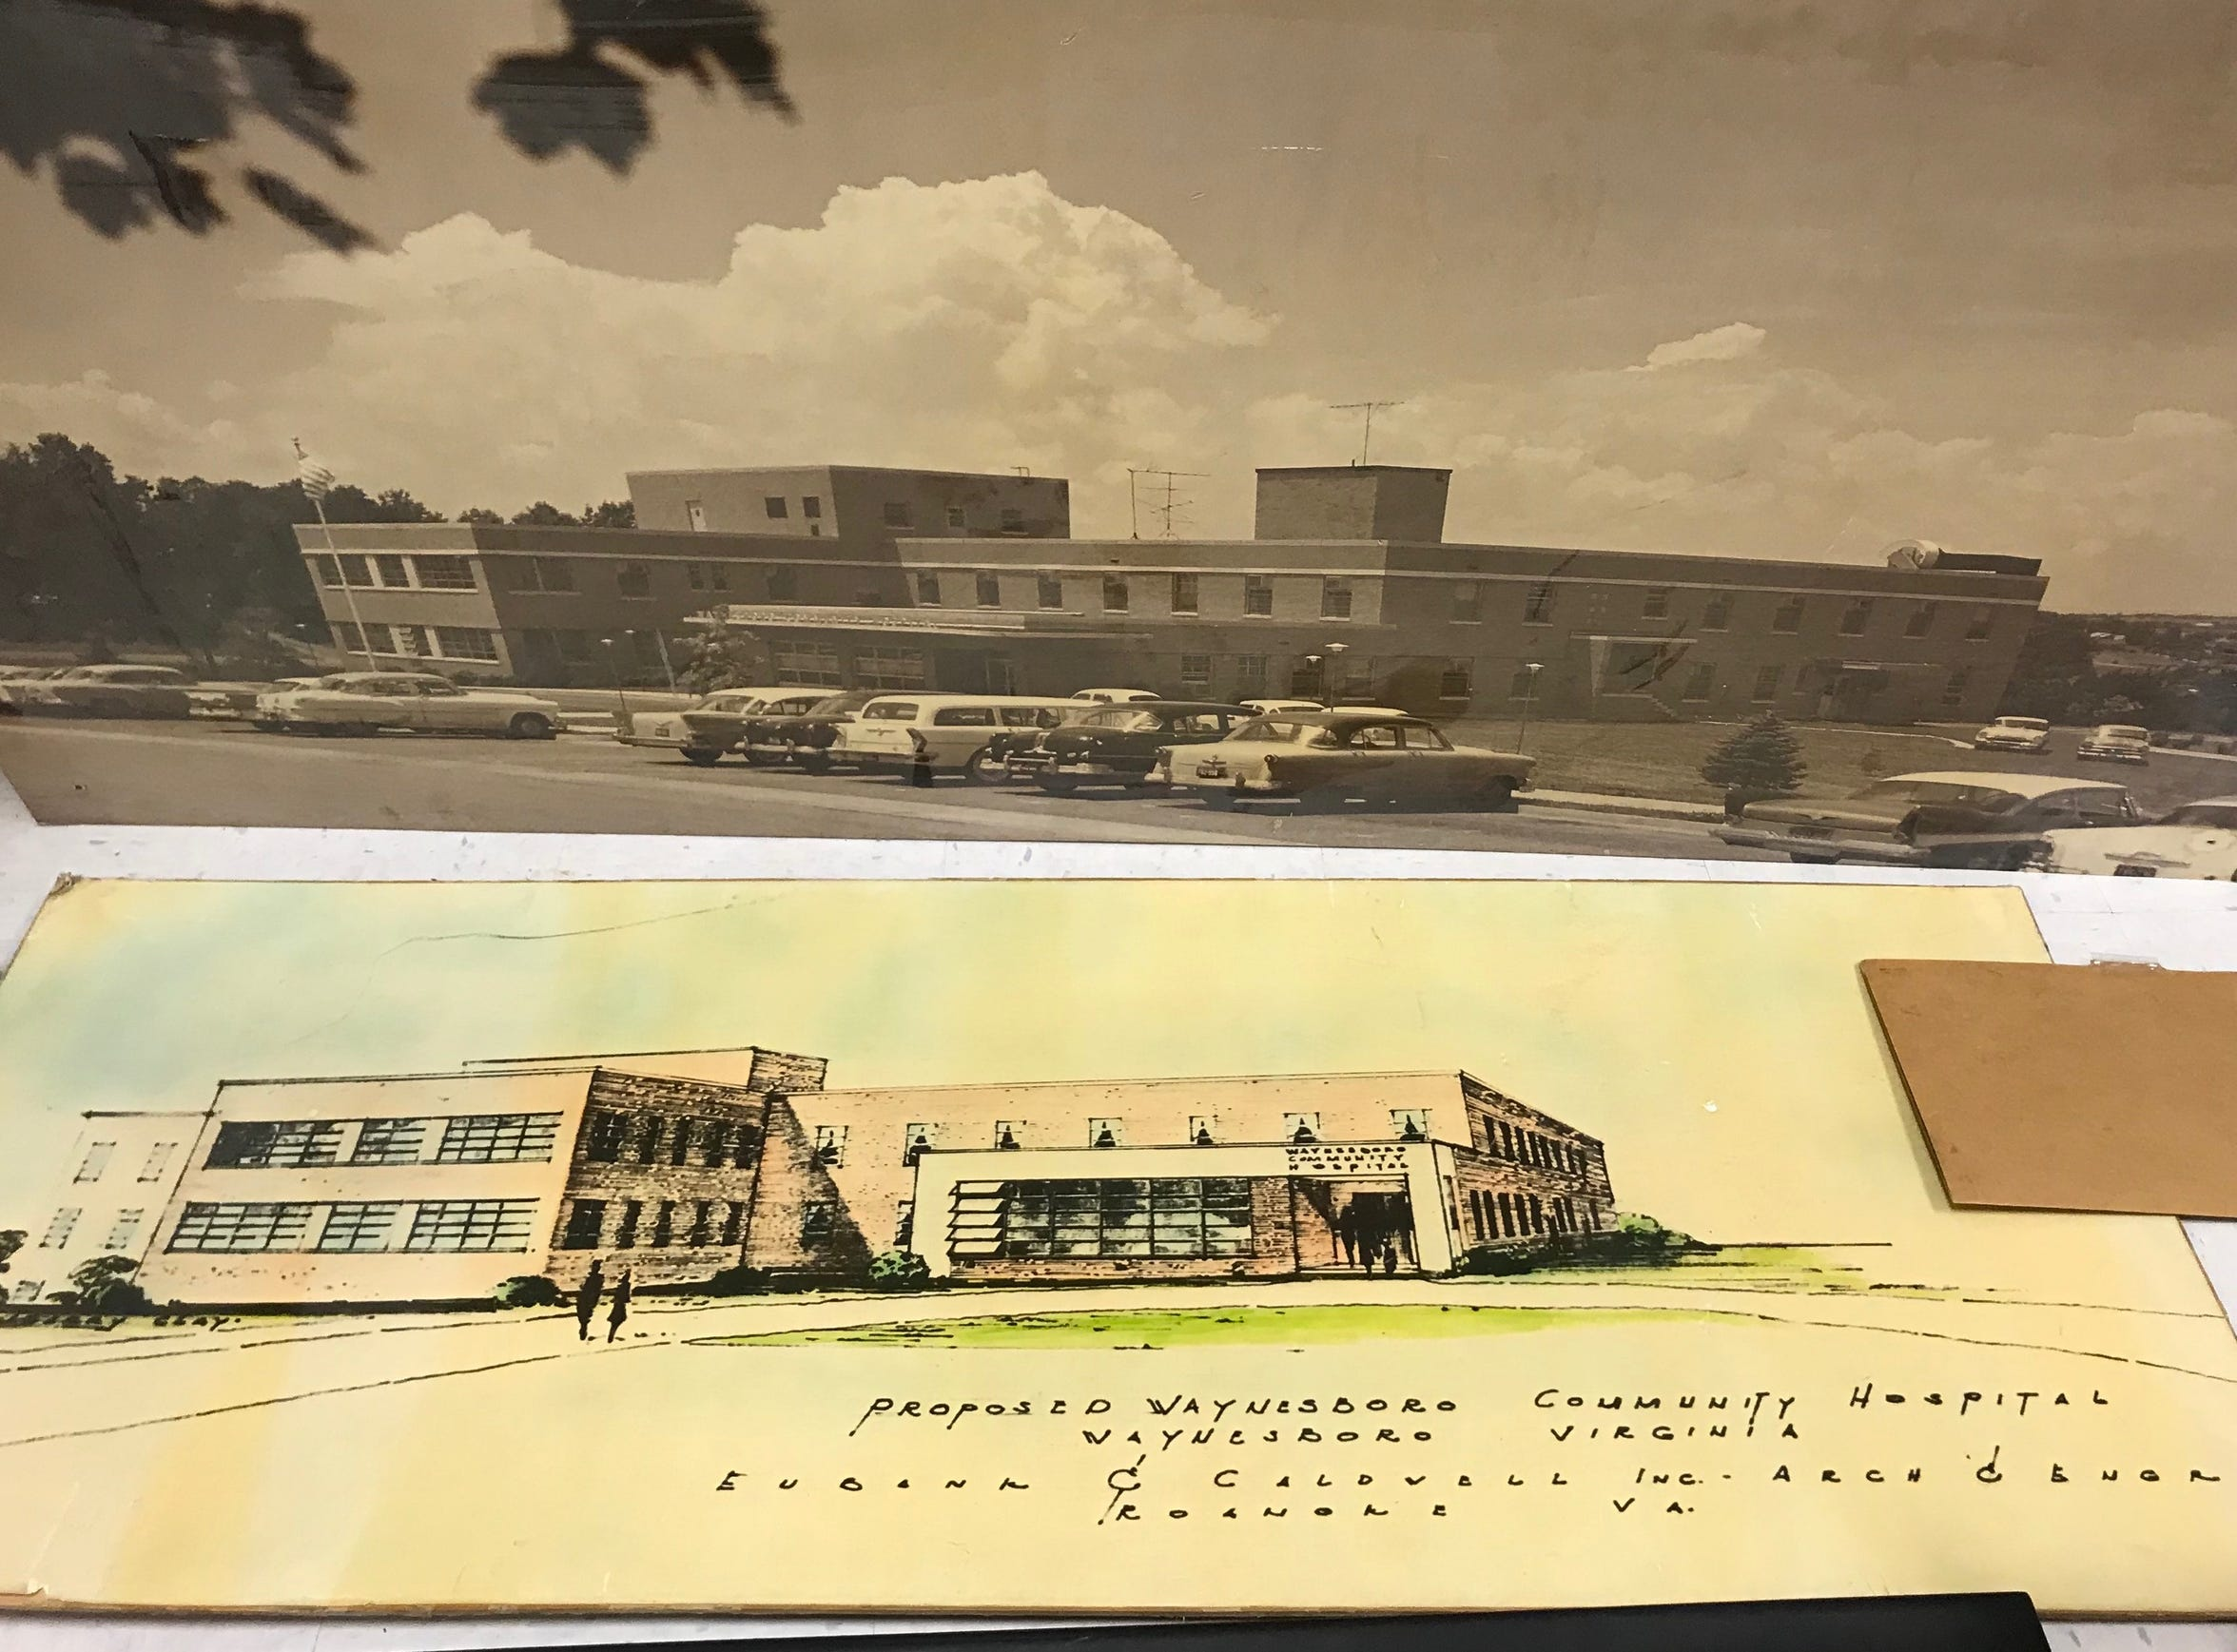 Architectural drawings of Waynesboro Community Hospital sit on the floor beside a photograph of the hospital in a storage room at Augusta Medical Center in Fishersville, Va. (Drawings rendered by Eubank and Caldwell.)